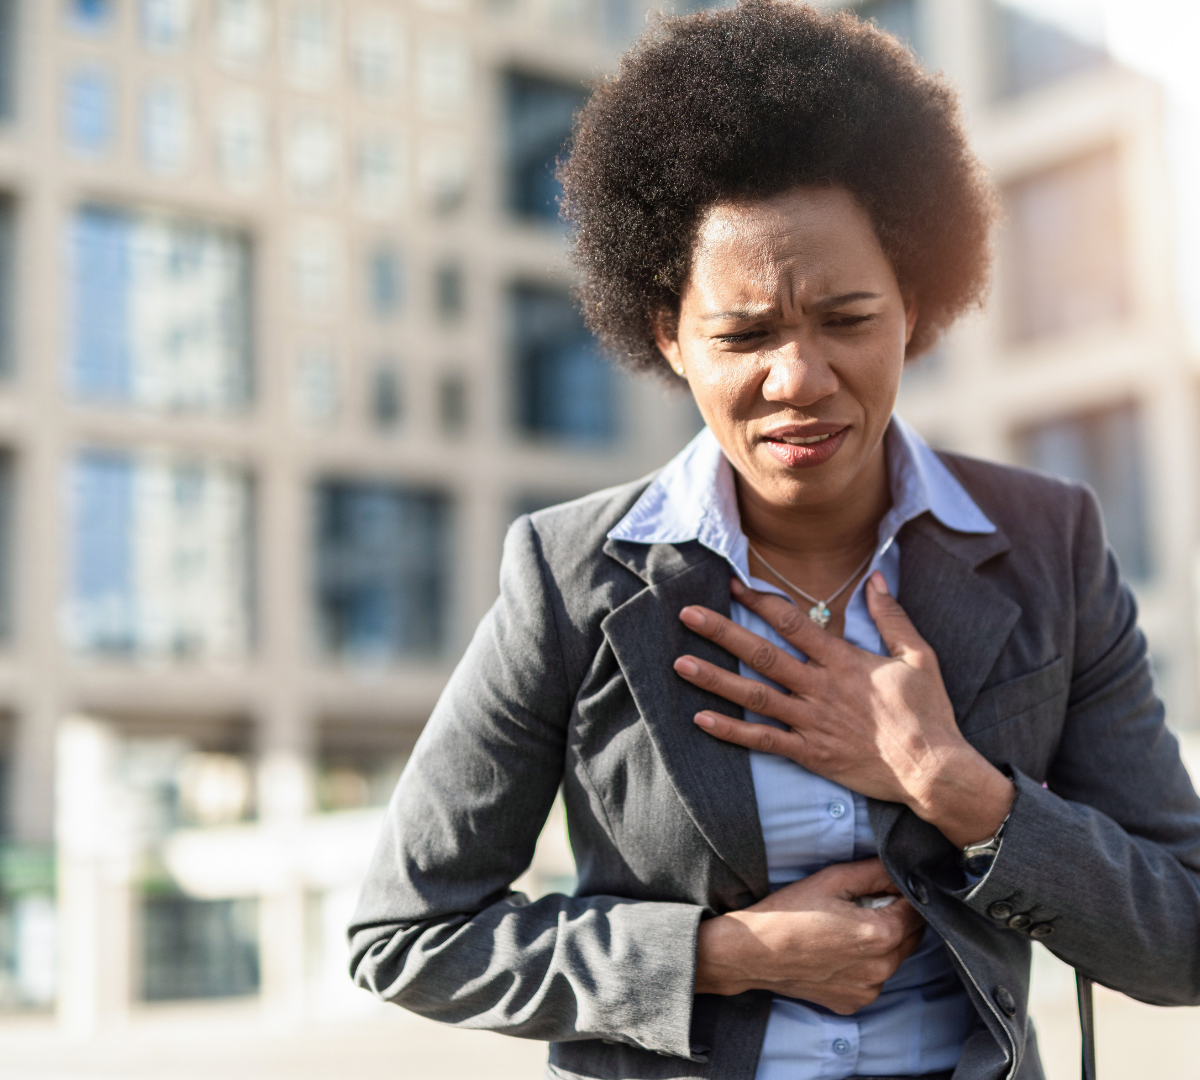 A chest injury can cause a variety of different ailments, including fractured or broken ribs and lung damage.